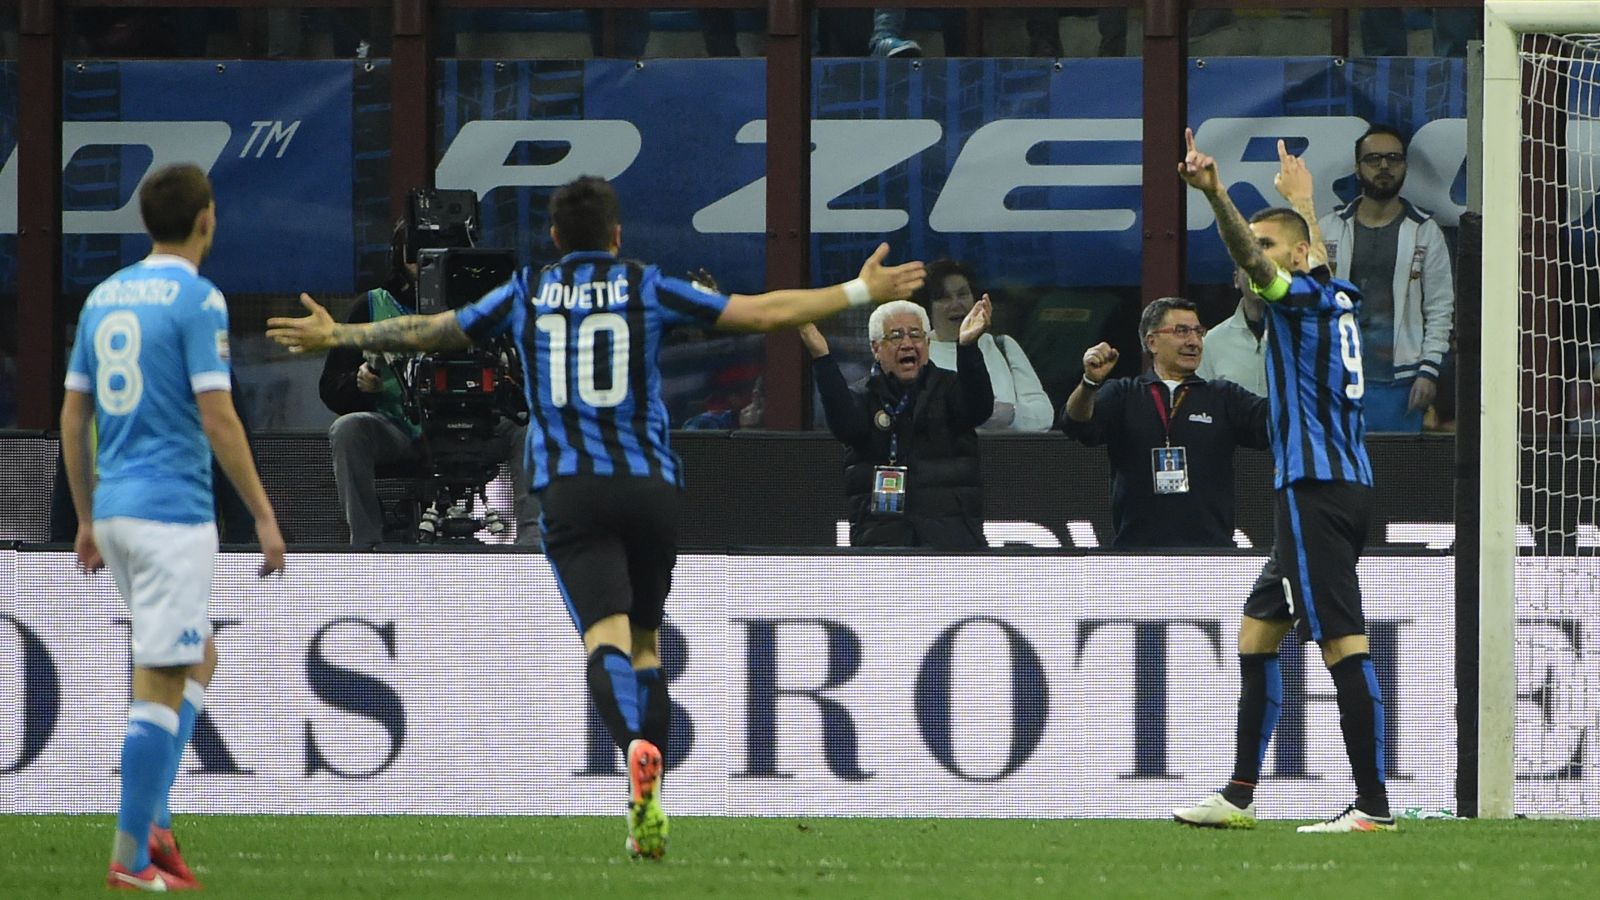 Mancini hails Icardi, Jovetic after Inter's win over Napoli